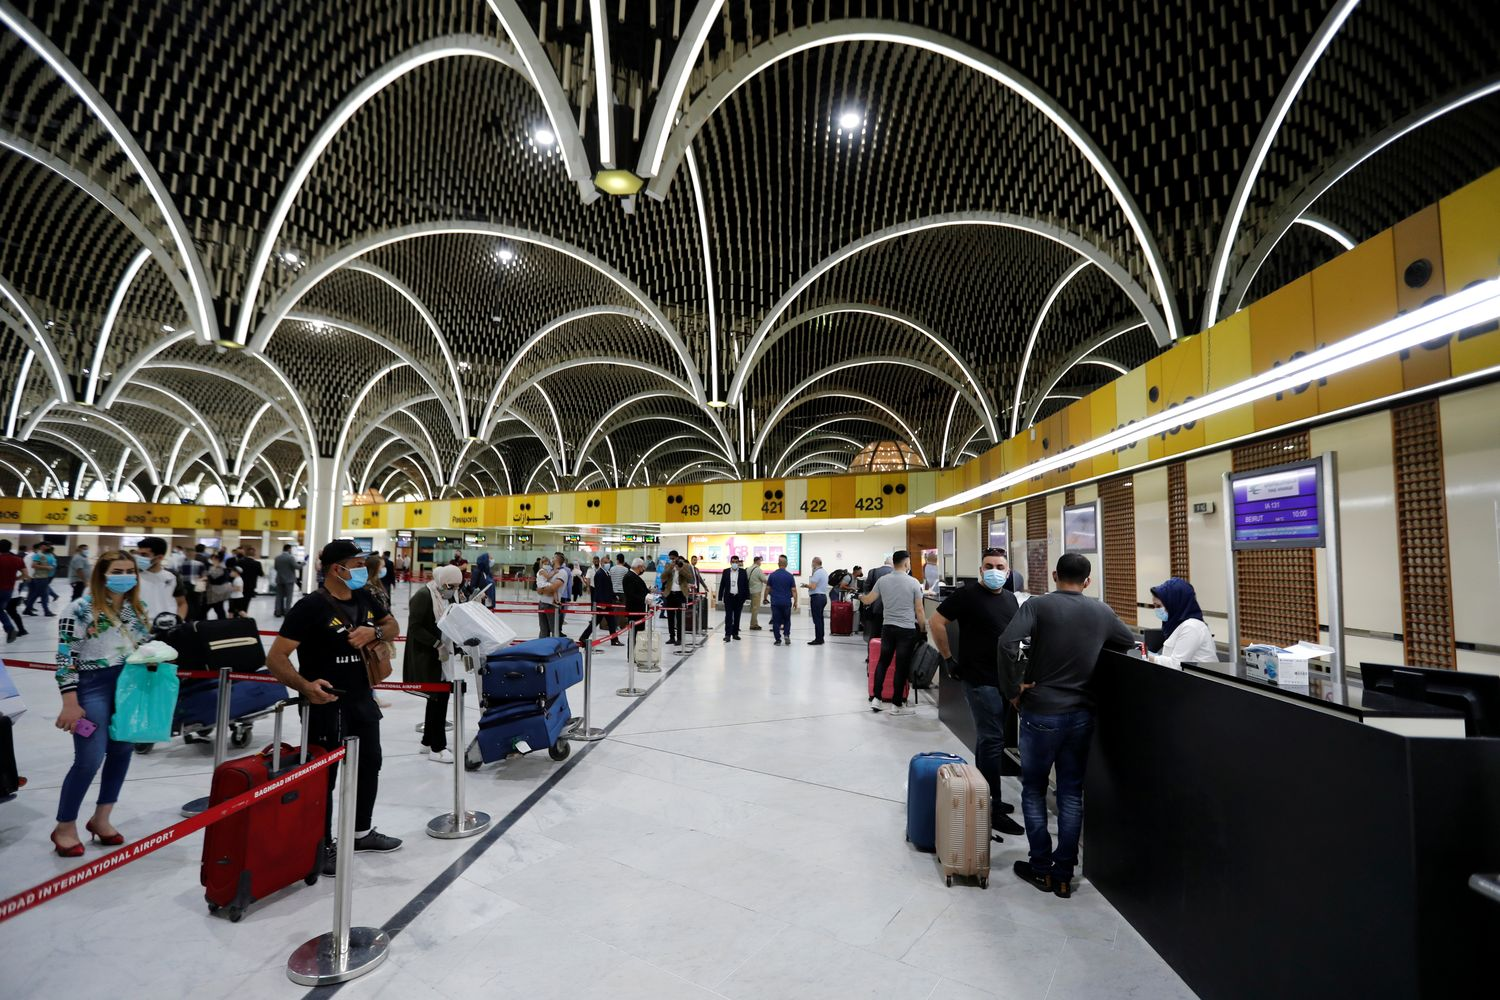 Passengers wearing protective masks line up to check-in after the reopening of Baghdad International Airport, where flights halted due to the coro0navirus outbreak in Baghdad on Thursday. (Reuters photo)